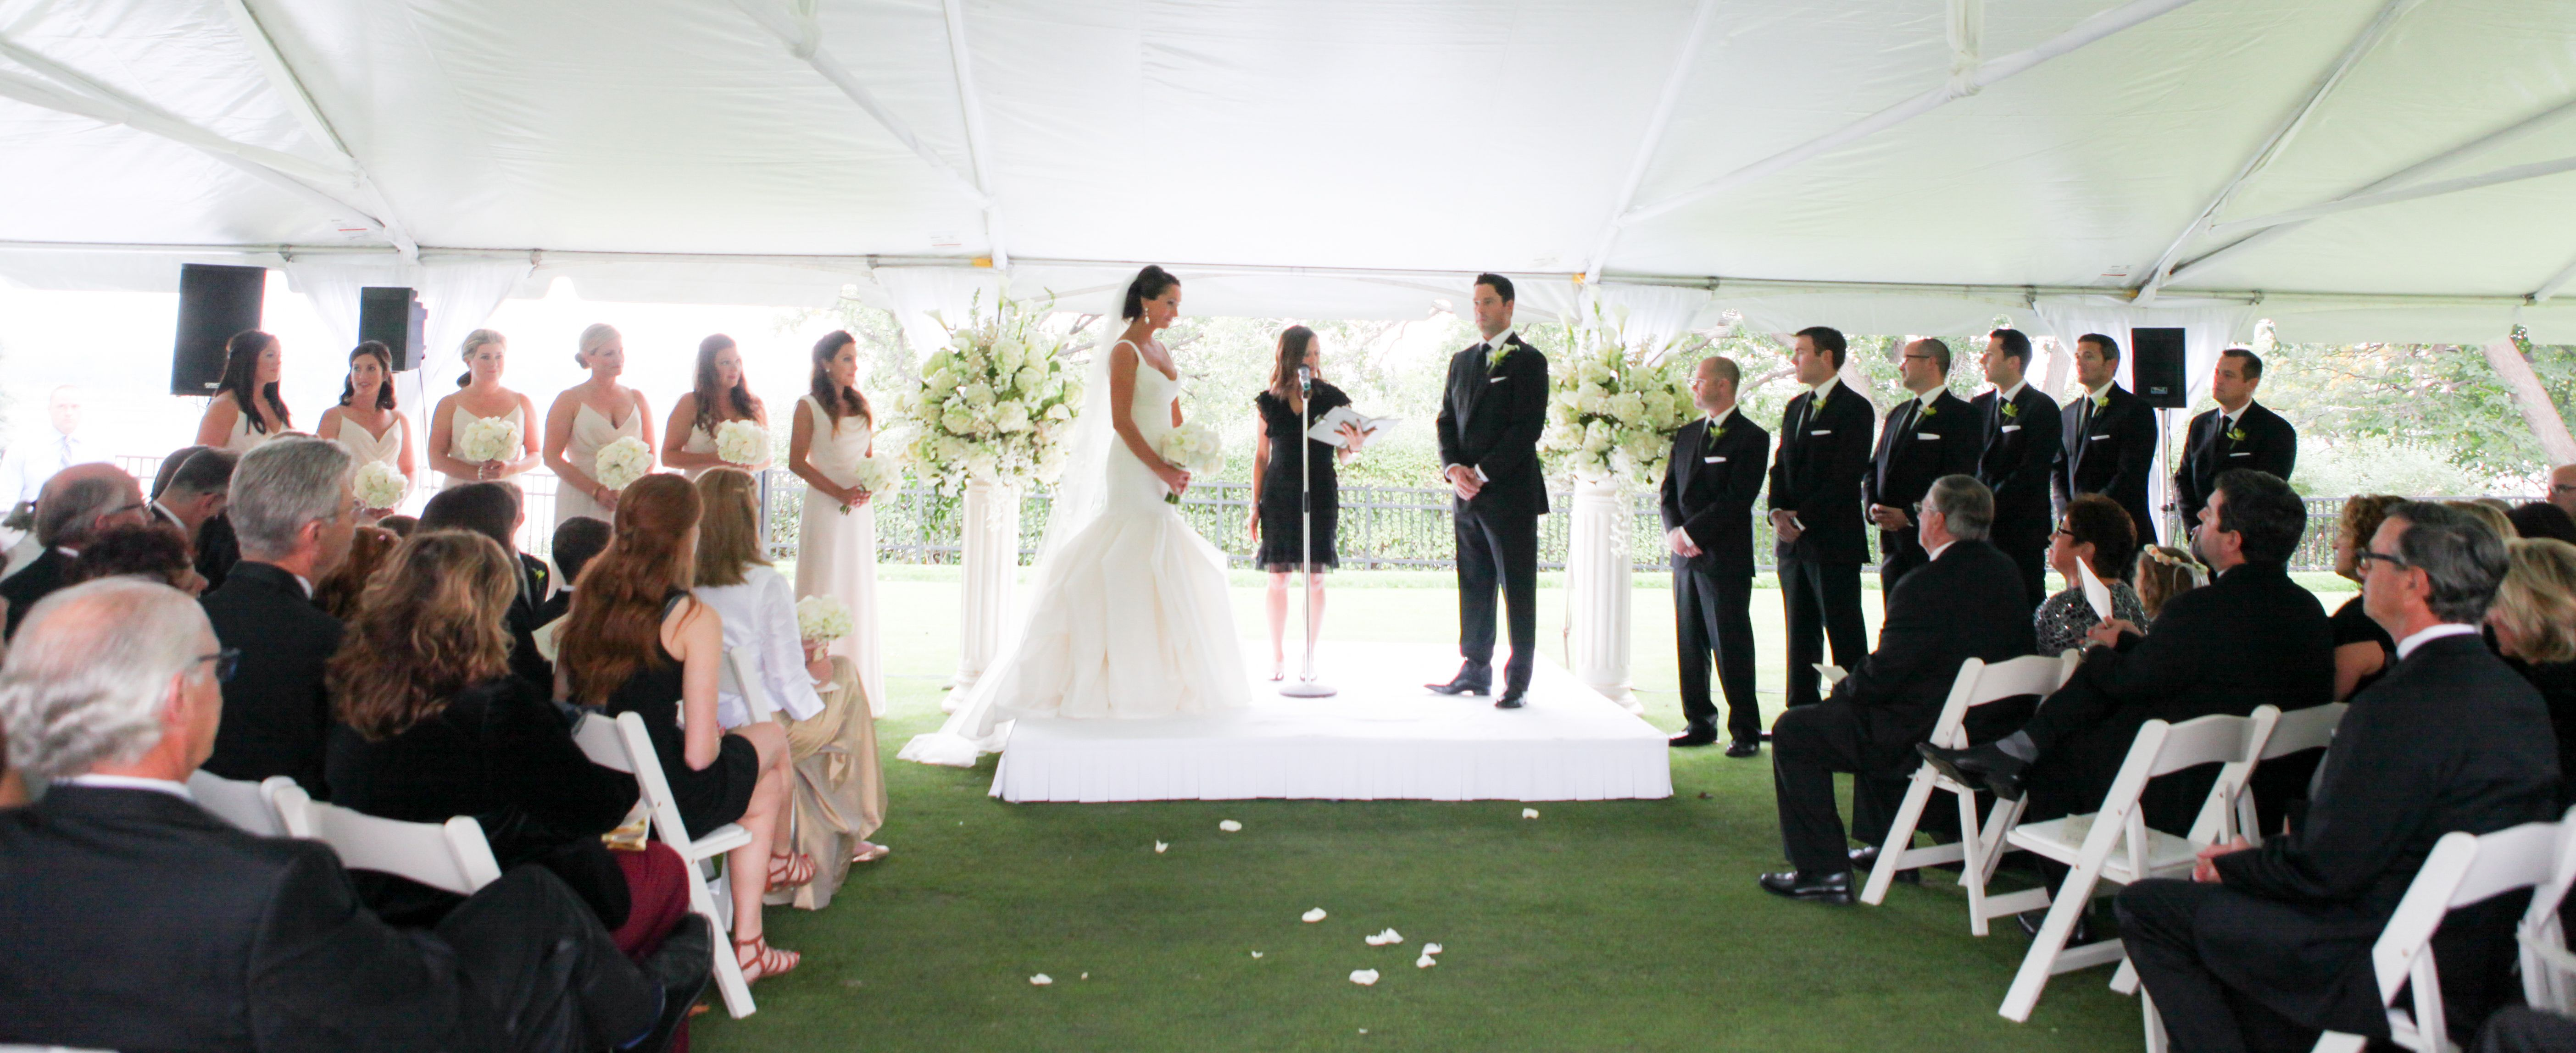 Kelly Brown Weddings // Mother Of The Bride // L'atelier Couture // Richfield Floral & Events // Minikahda Club